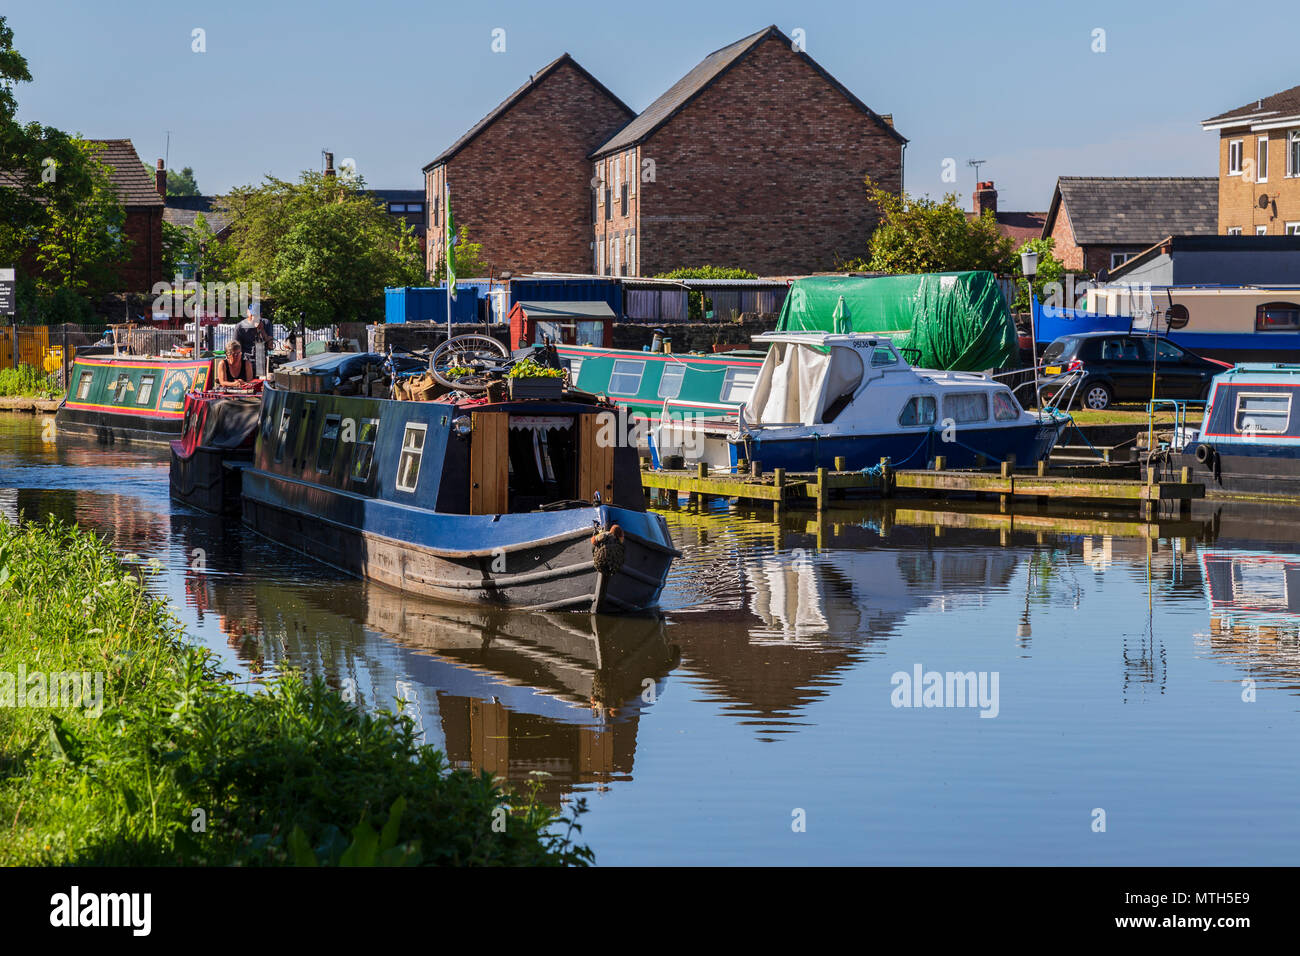 Waterborne Travelling Blacksmith on Macclesfield Canal - Stock Image